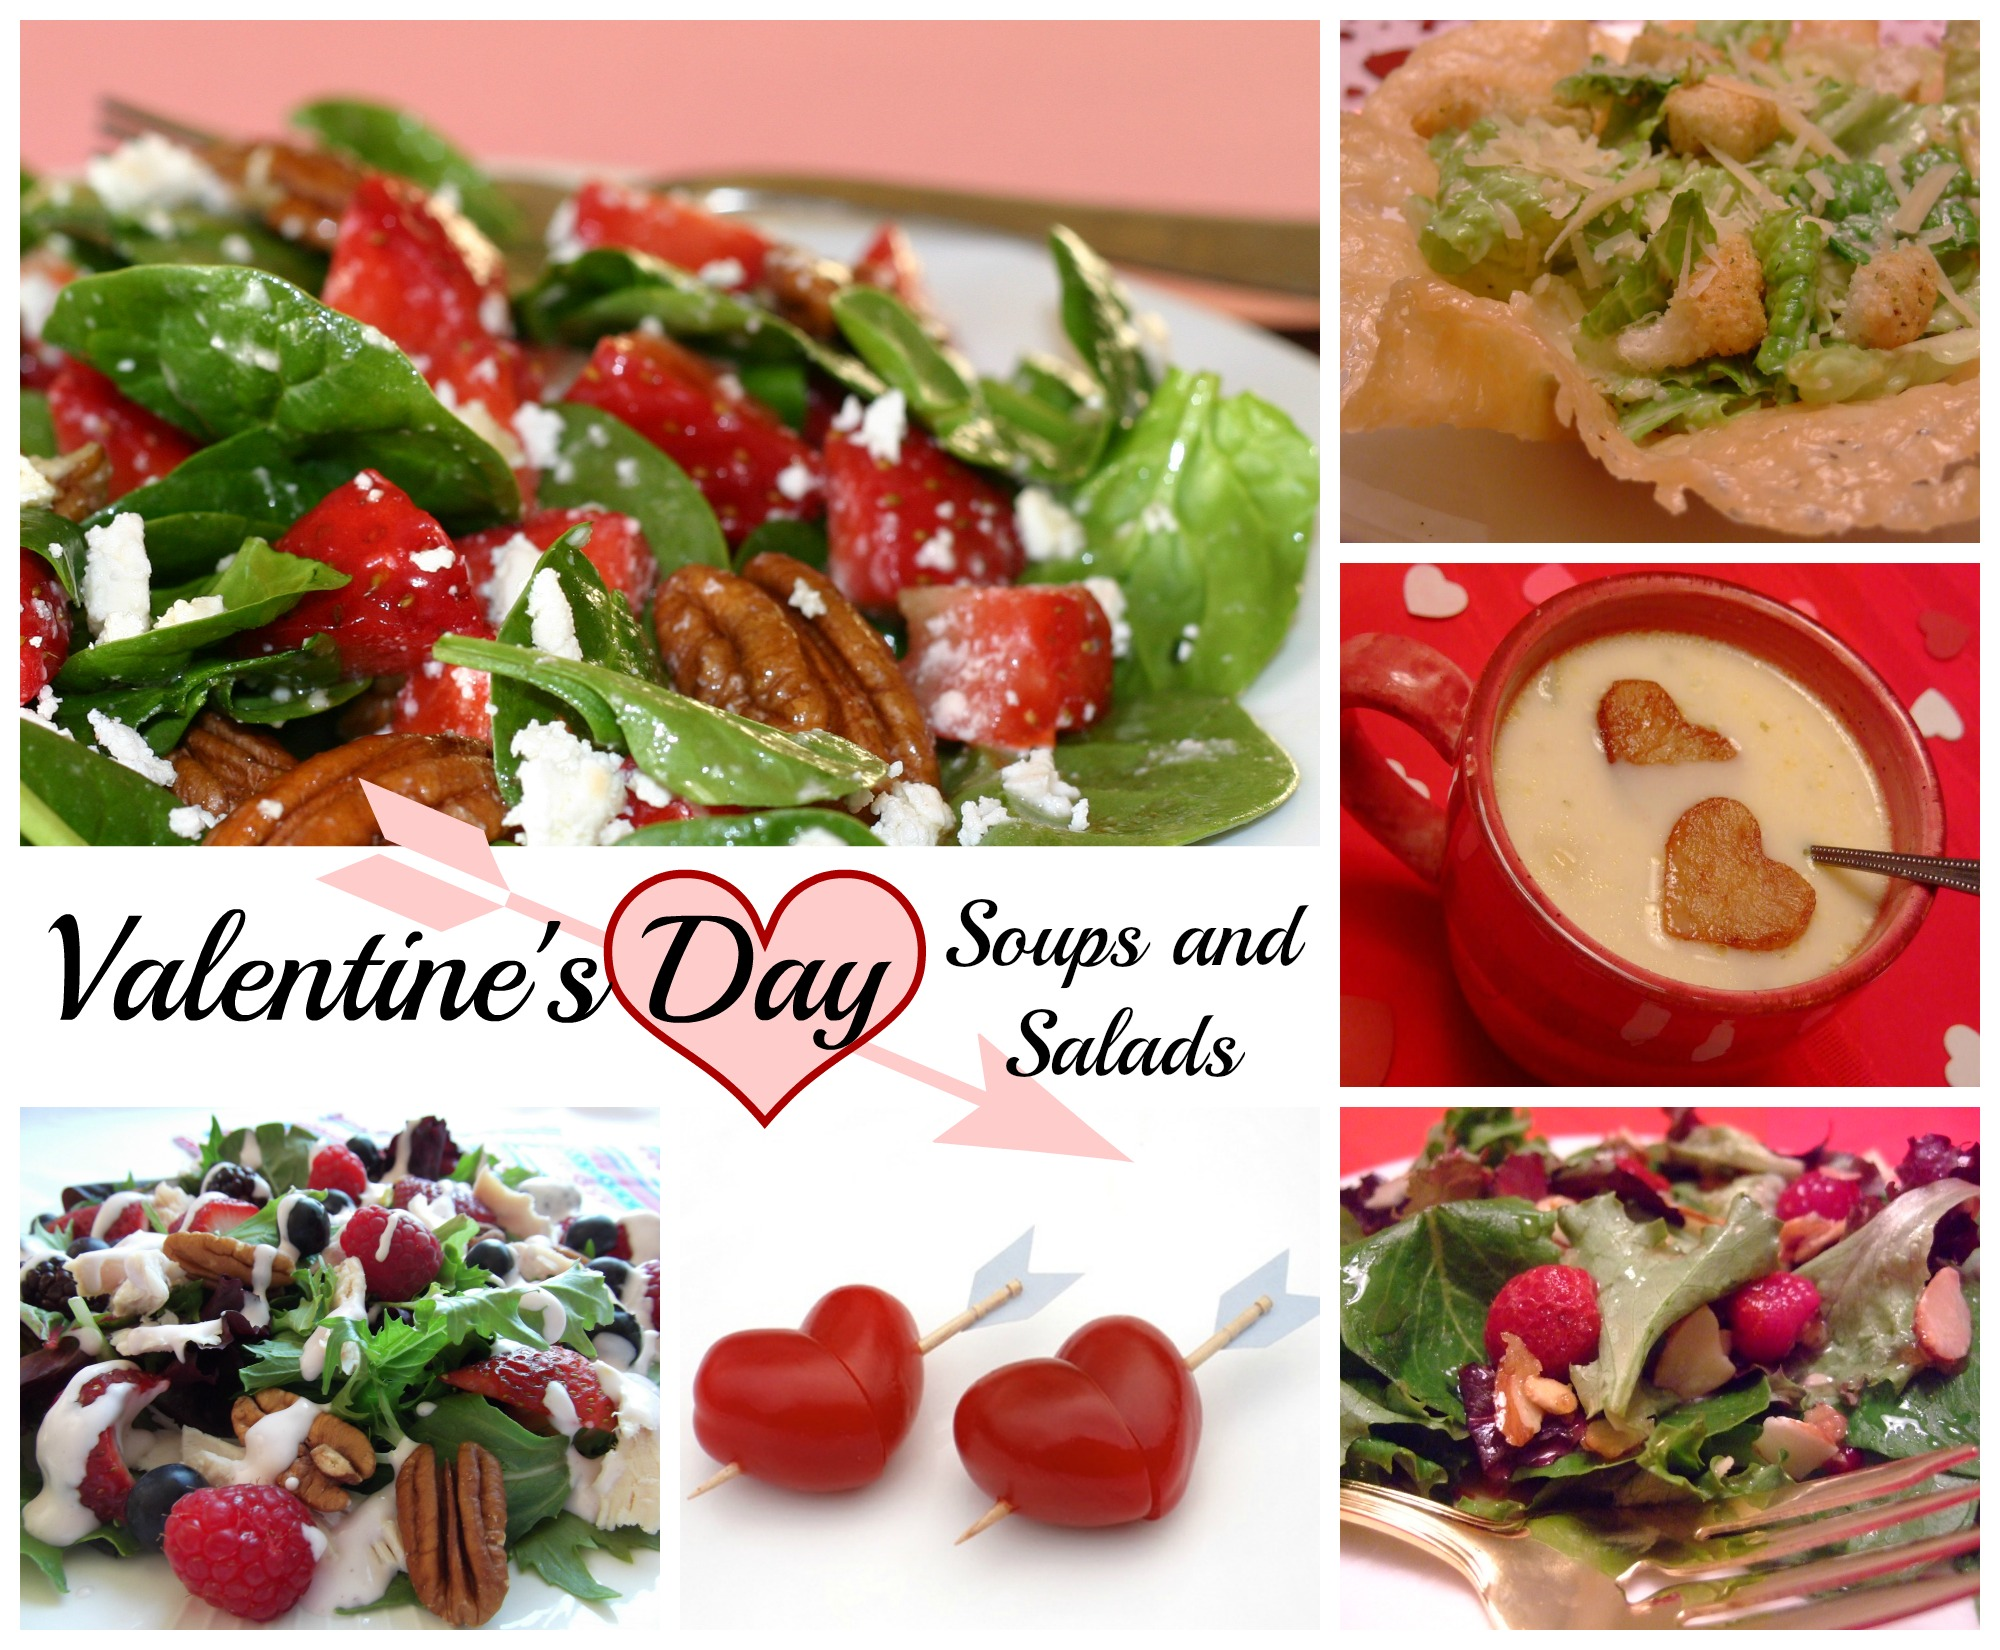 Valentine's Day Soup and Salad Ideas and Recipes